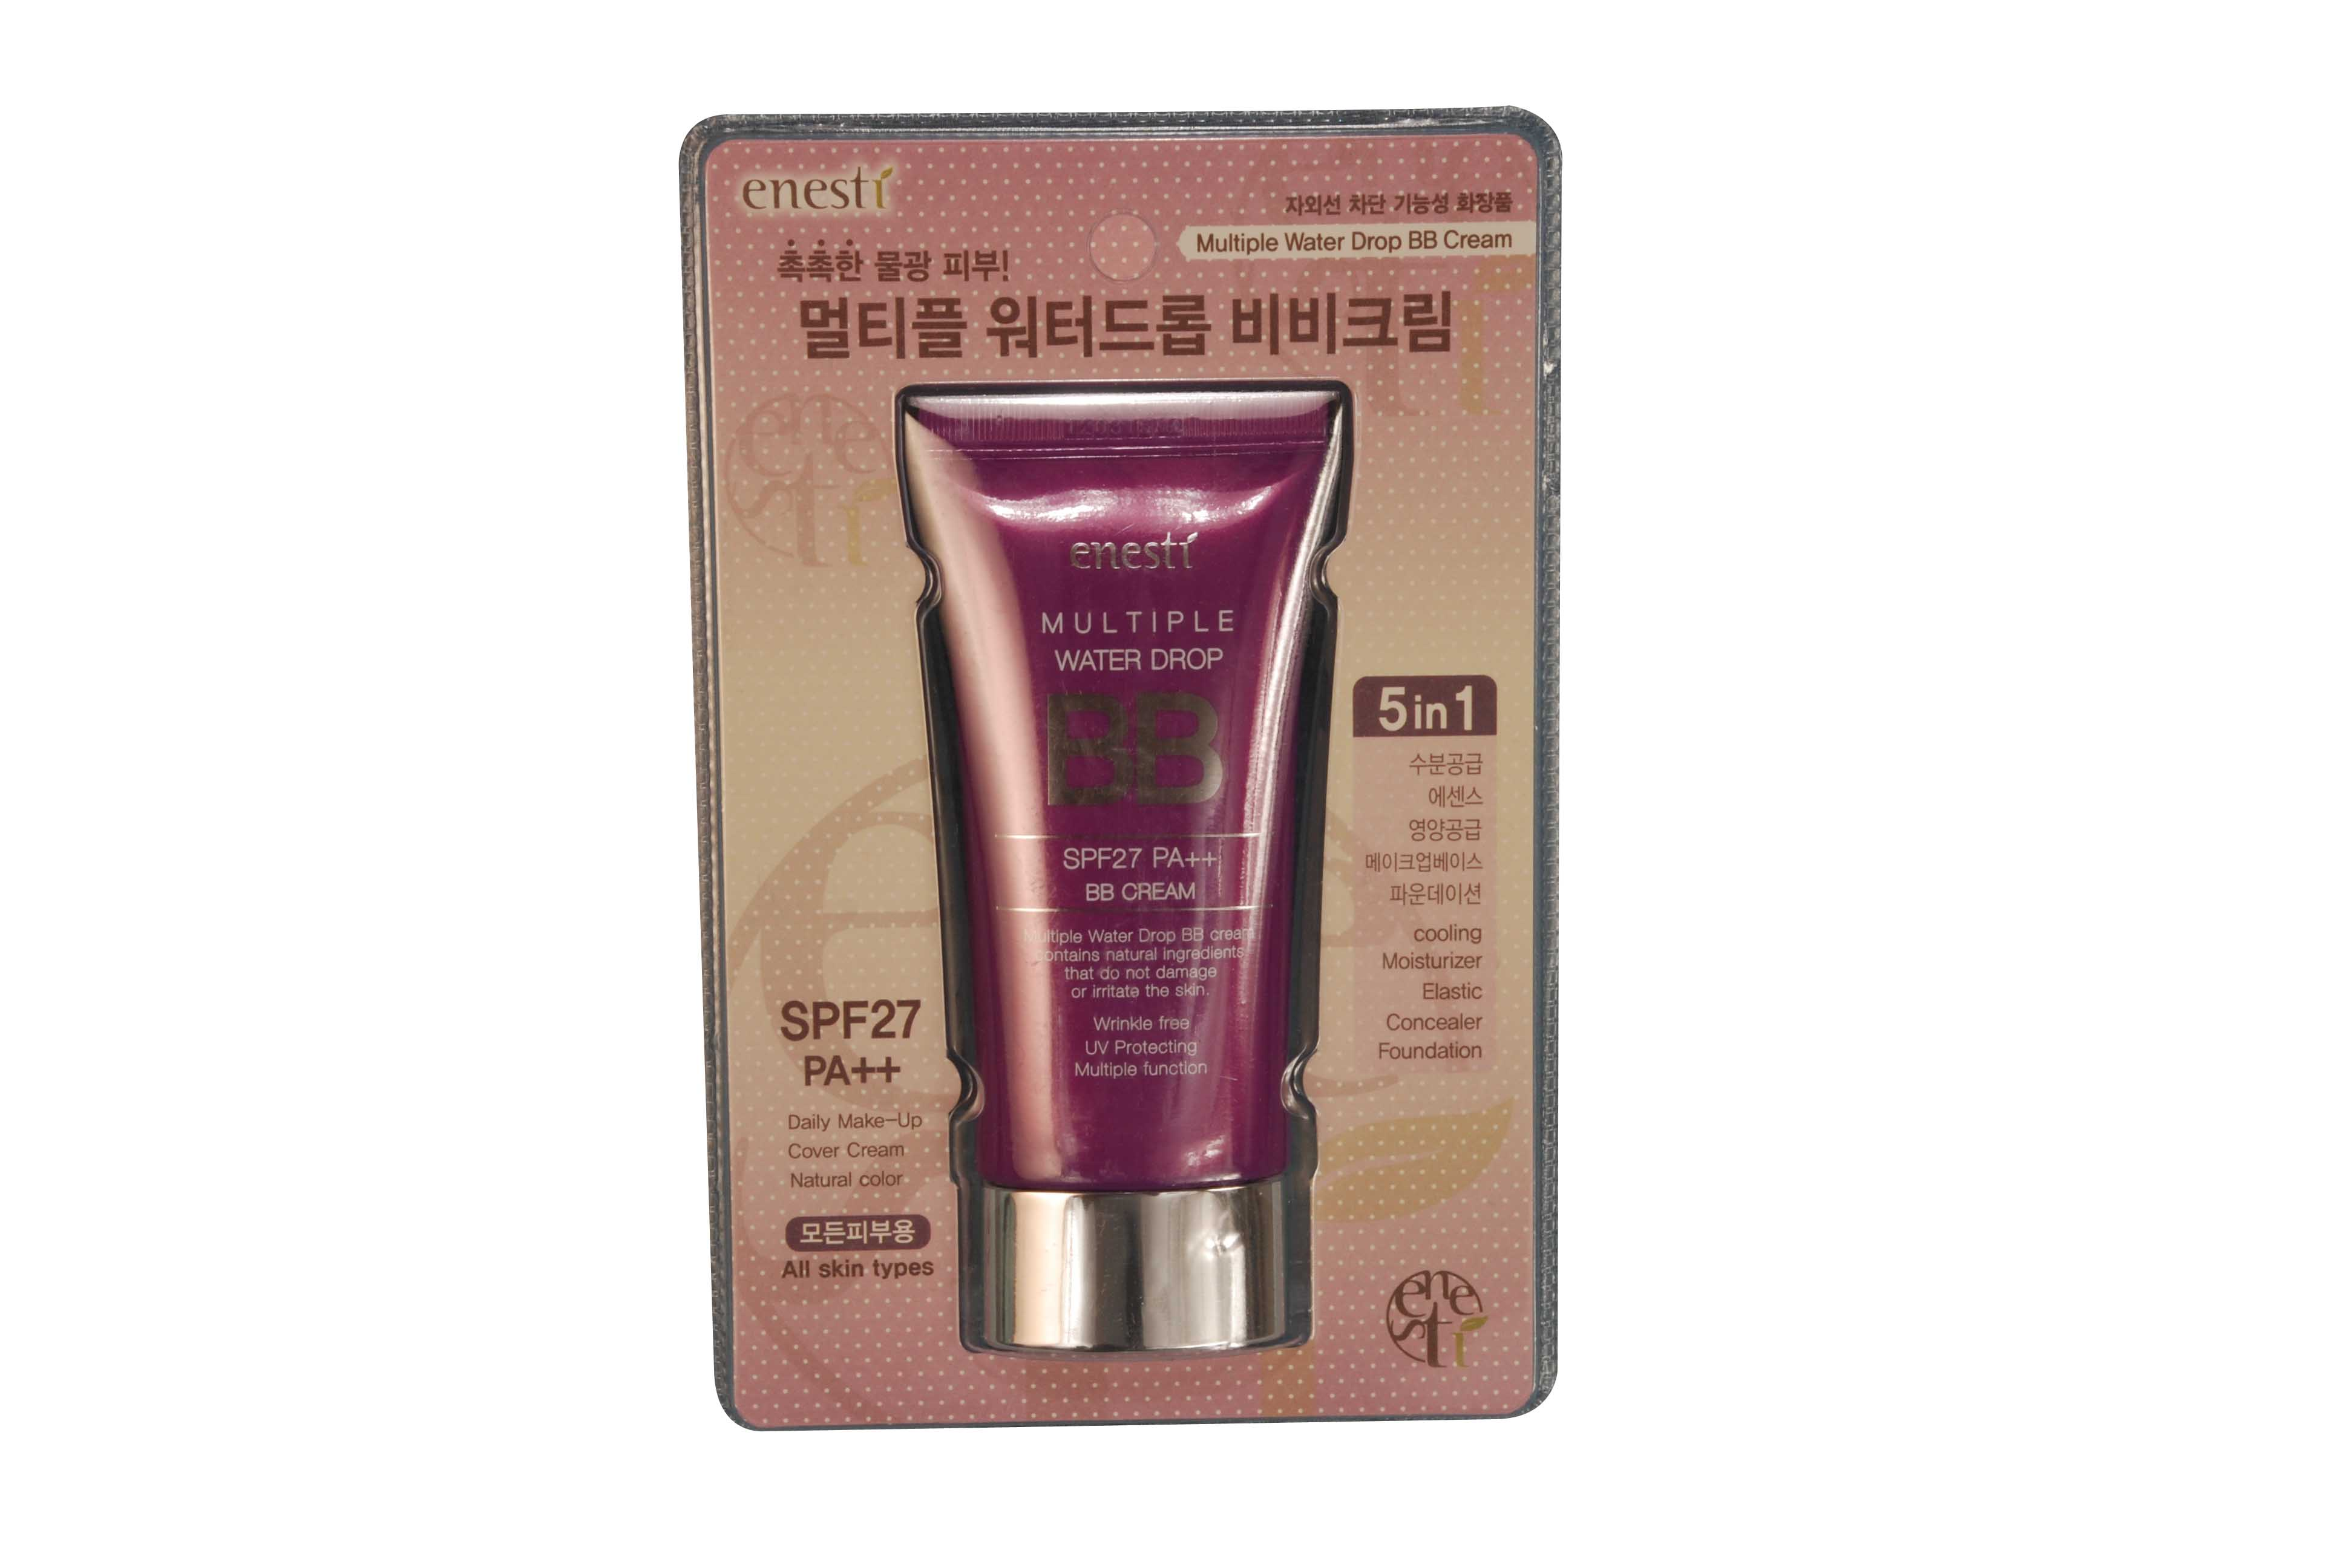 3F Pearl BB Cream SPF 27 PA++